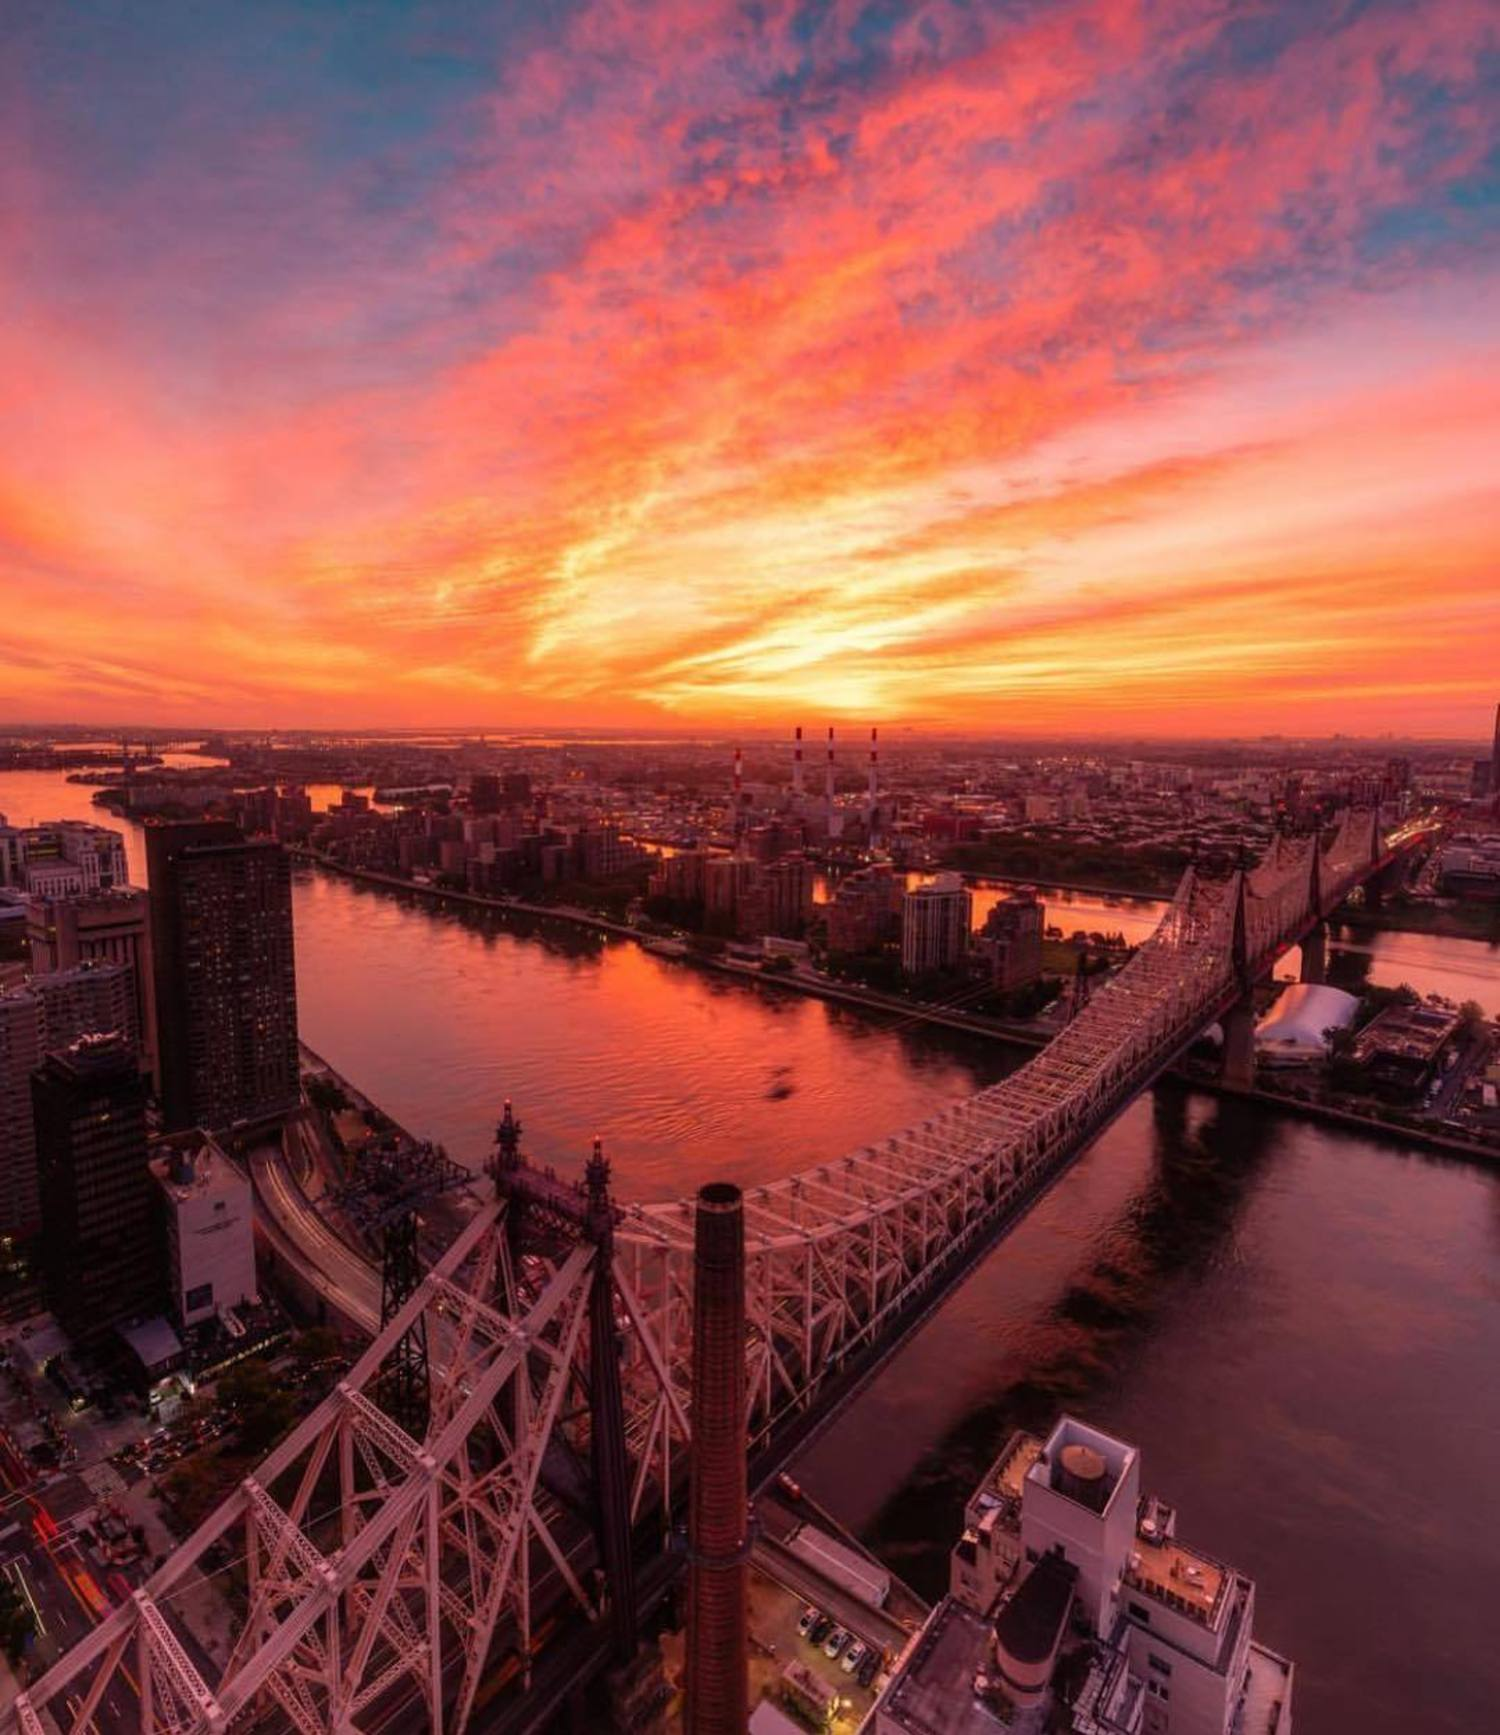 Sunrise over Roosevelt Island and Queens, New York